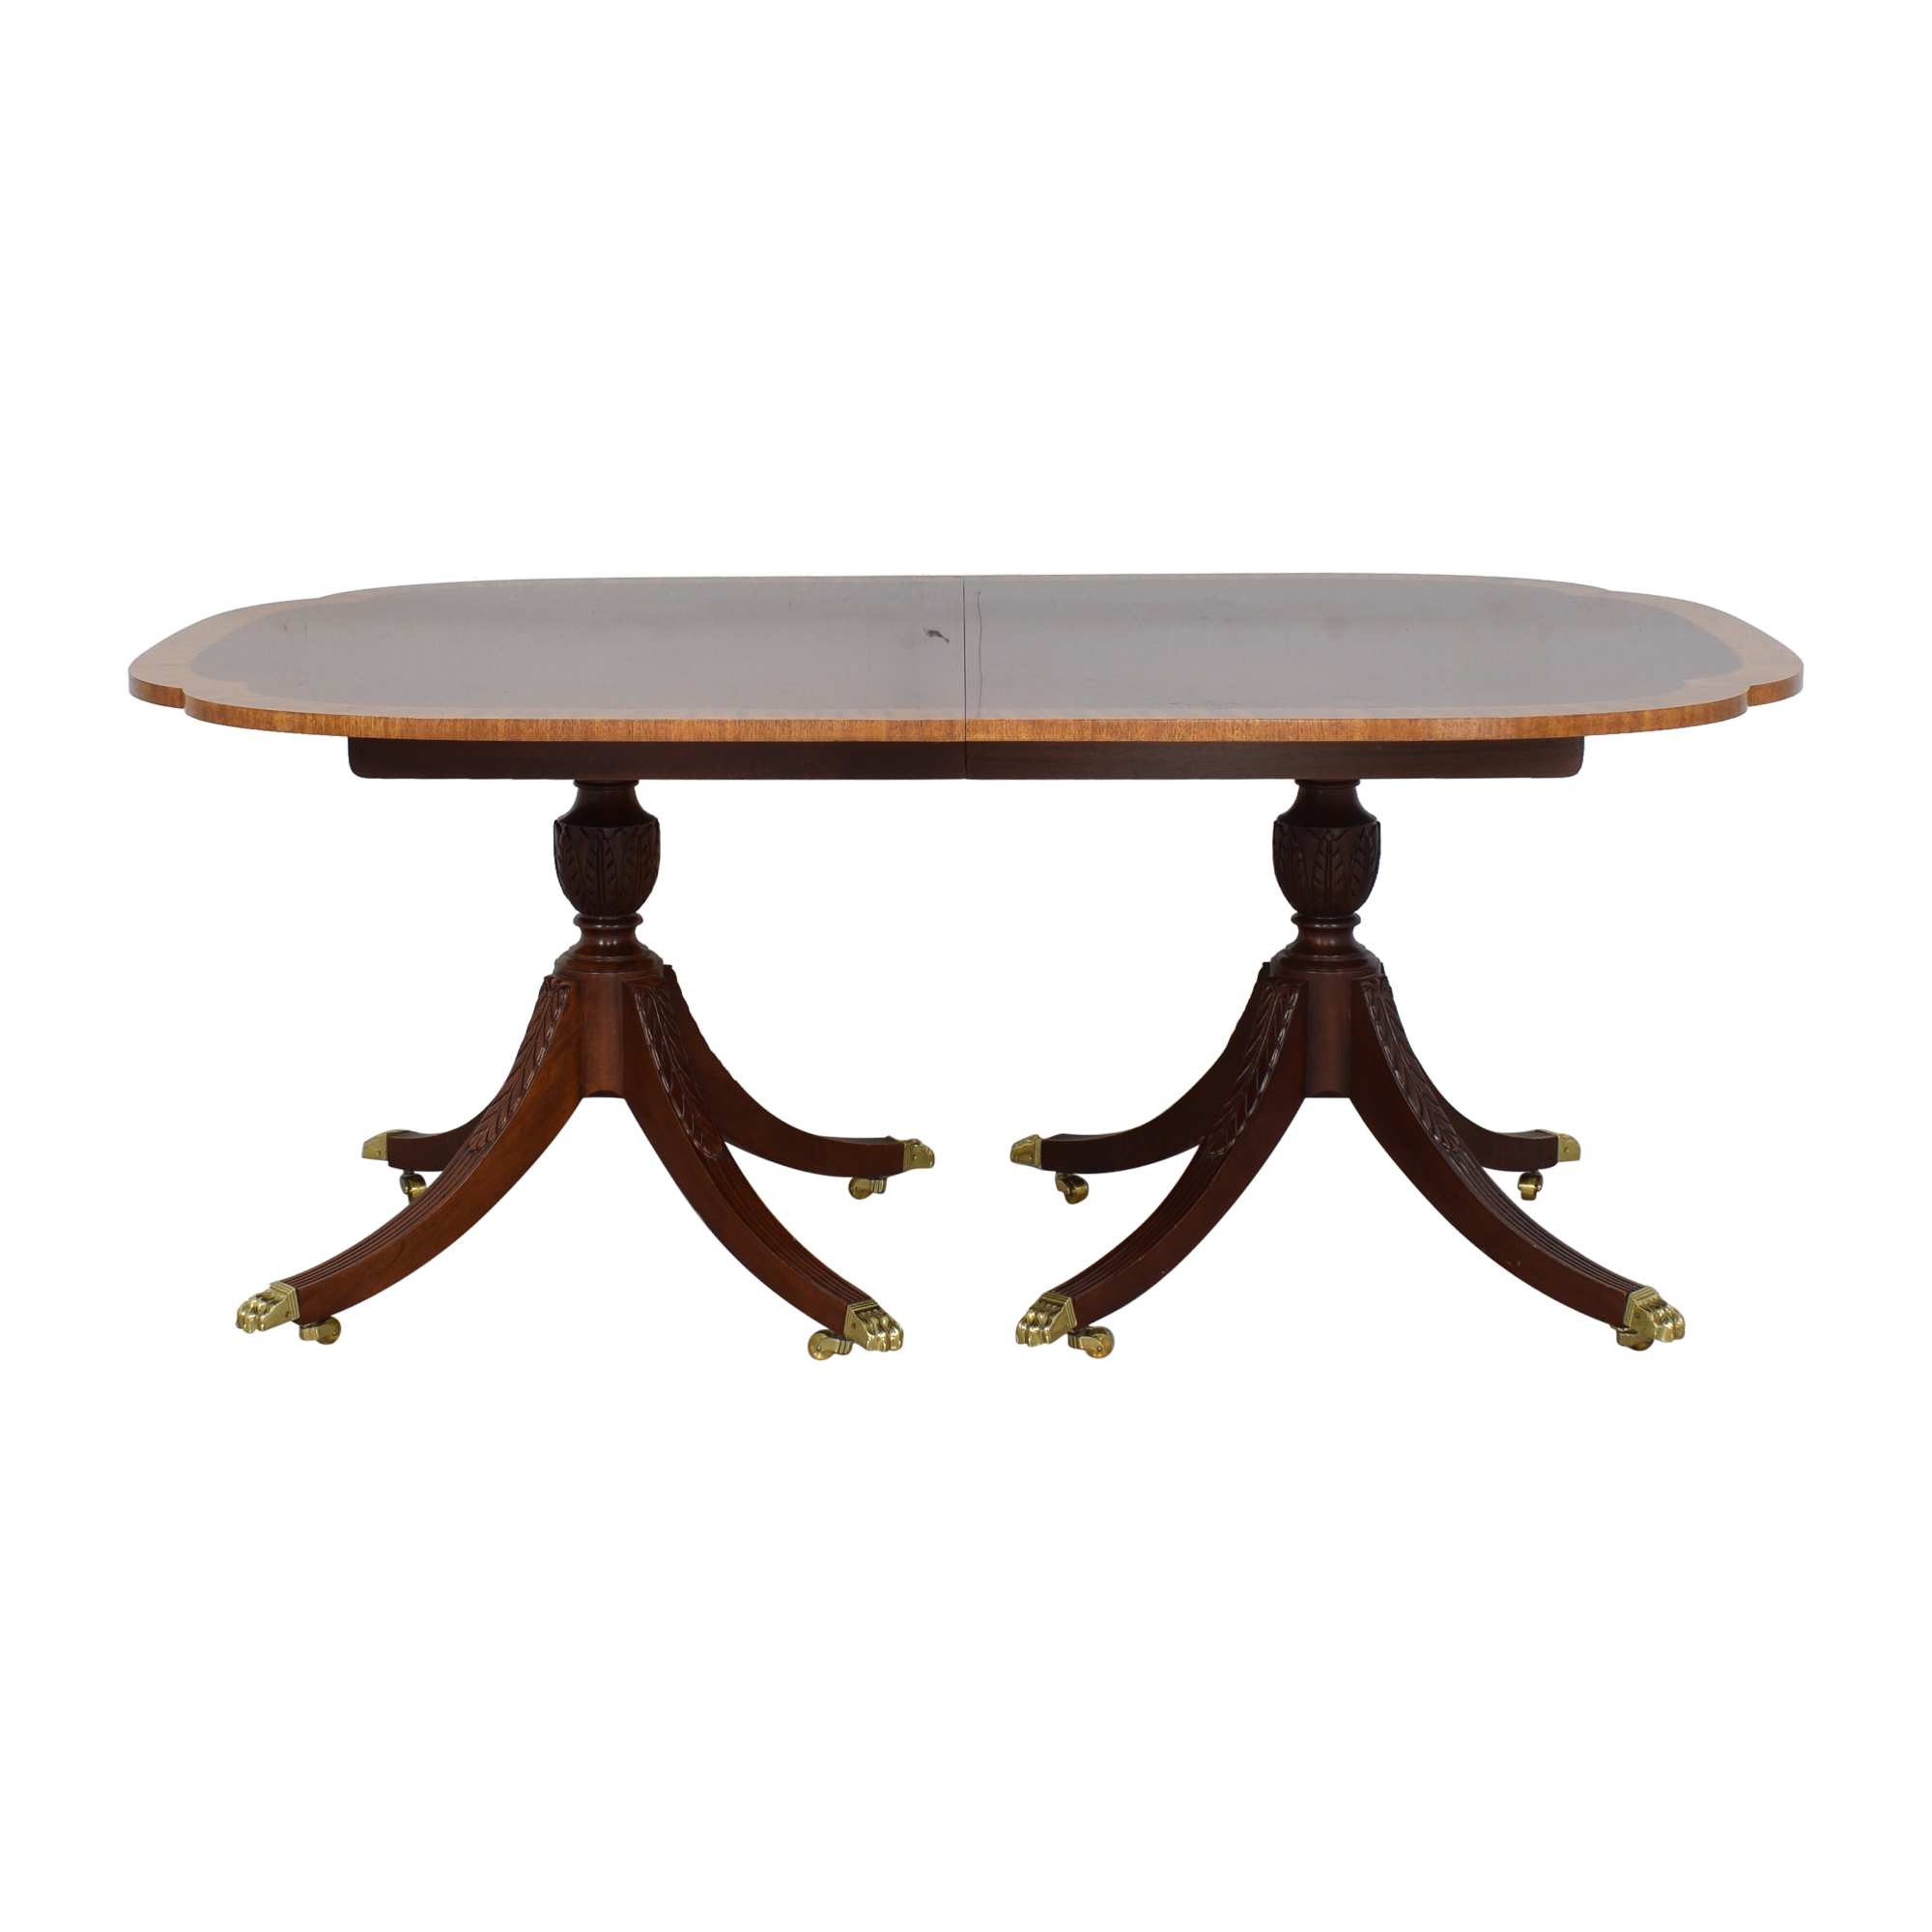 Councill Councill Craftsman Banded Top Dining Table